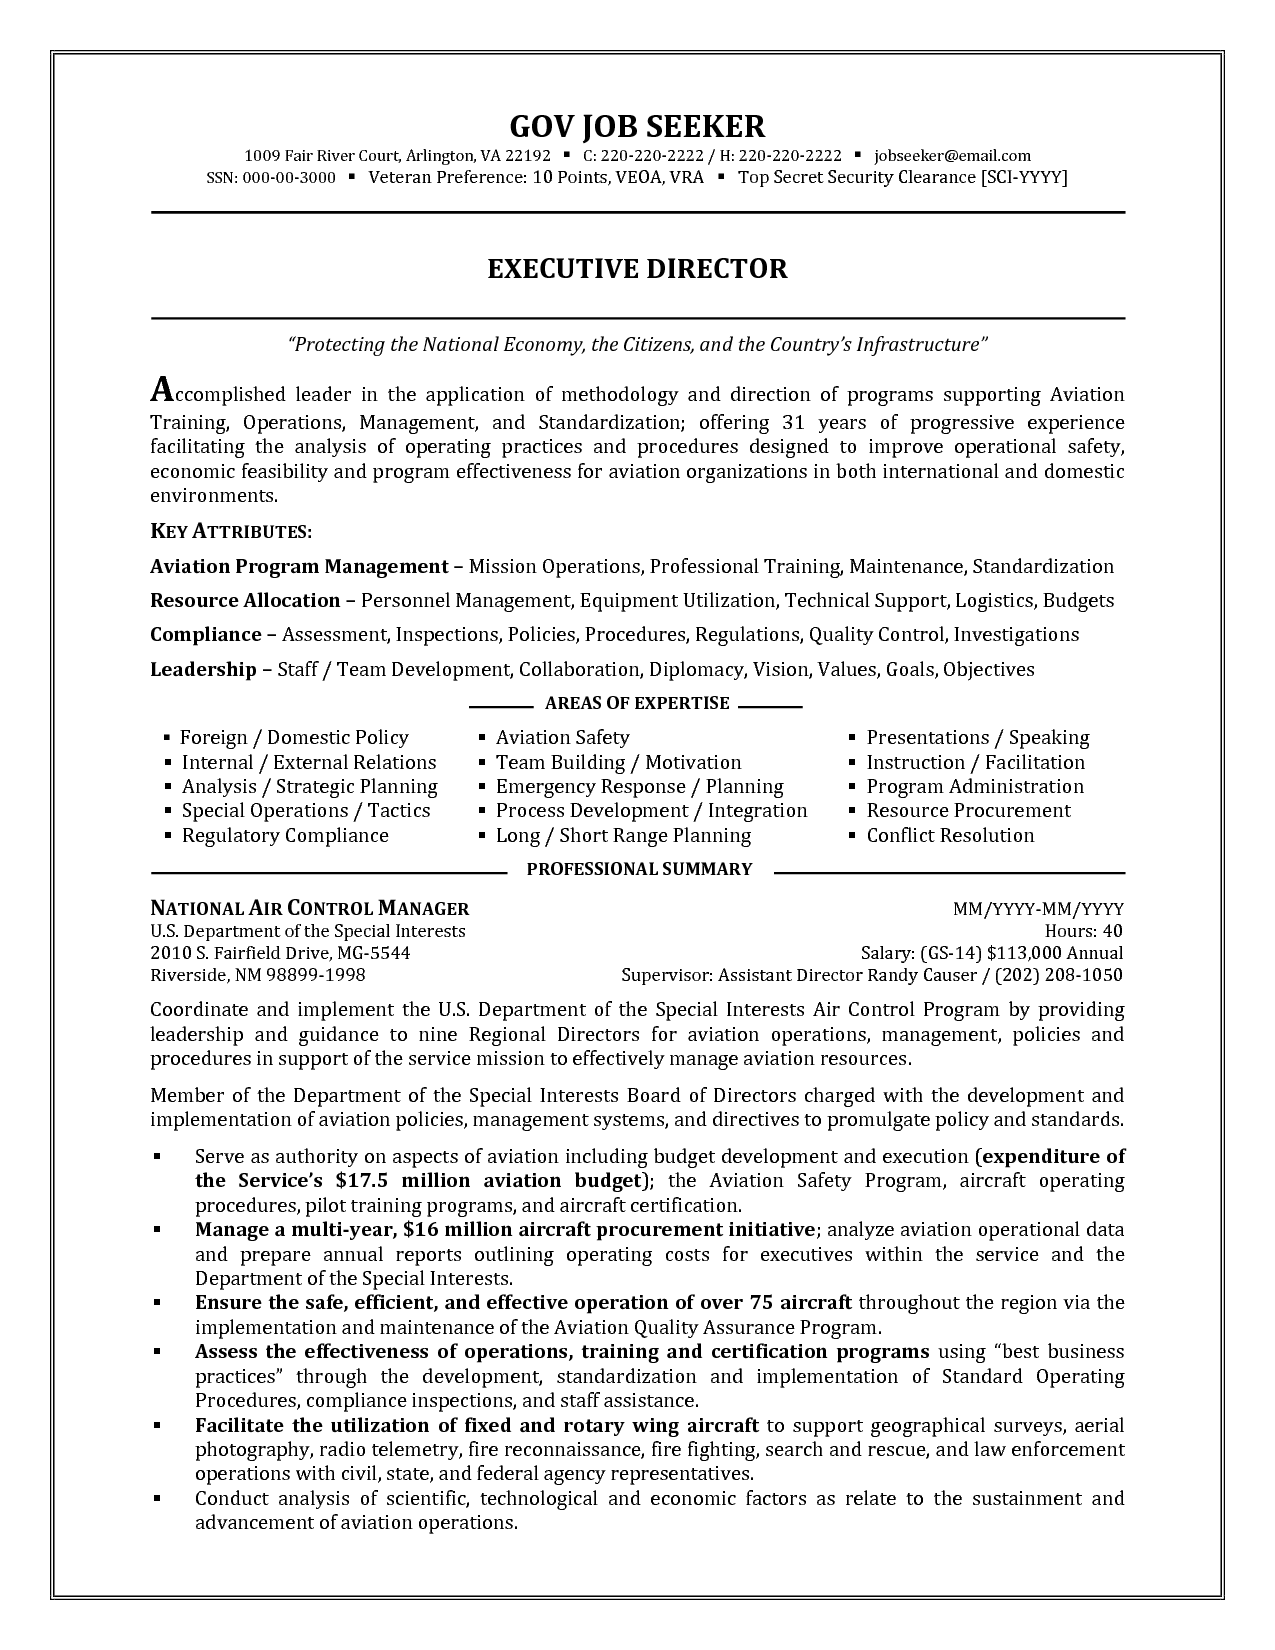 Film Production Assistant Resume Template - http://www ...